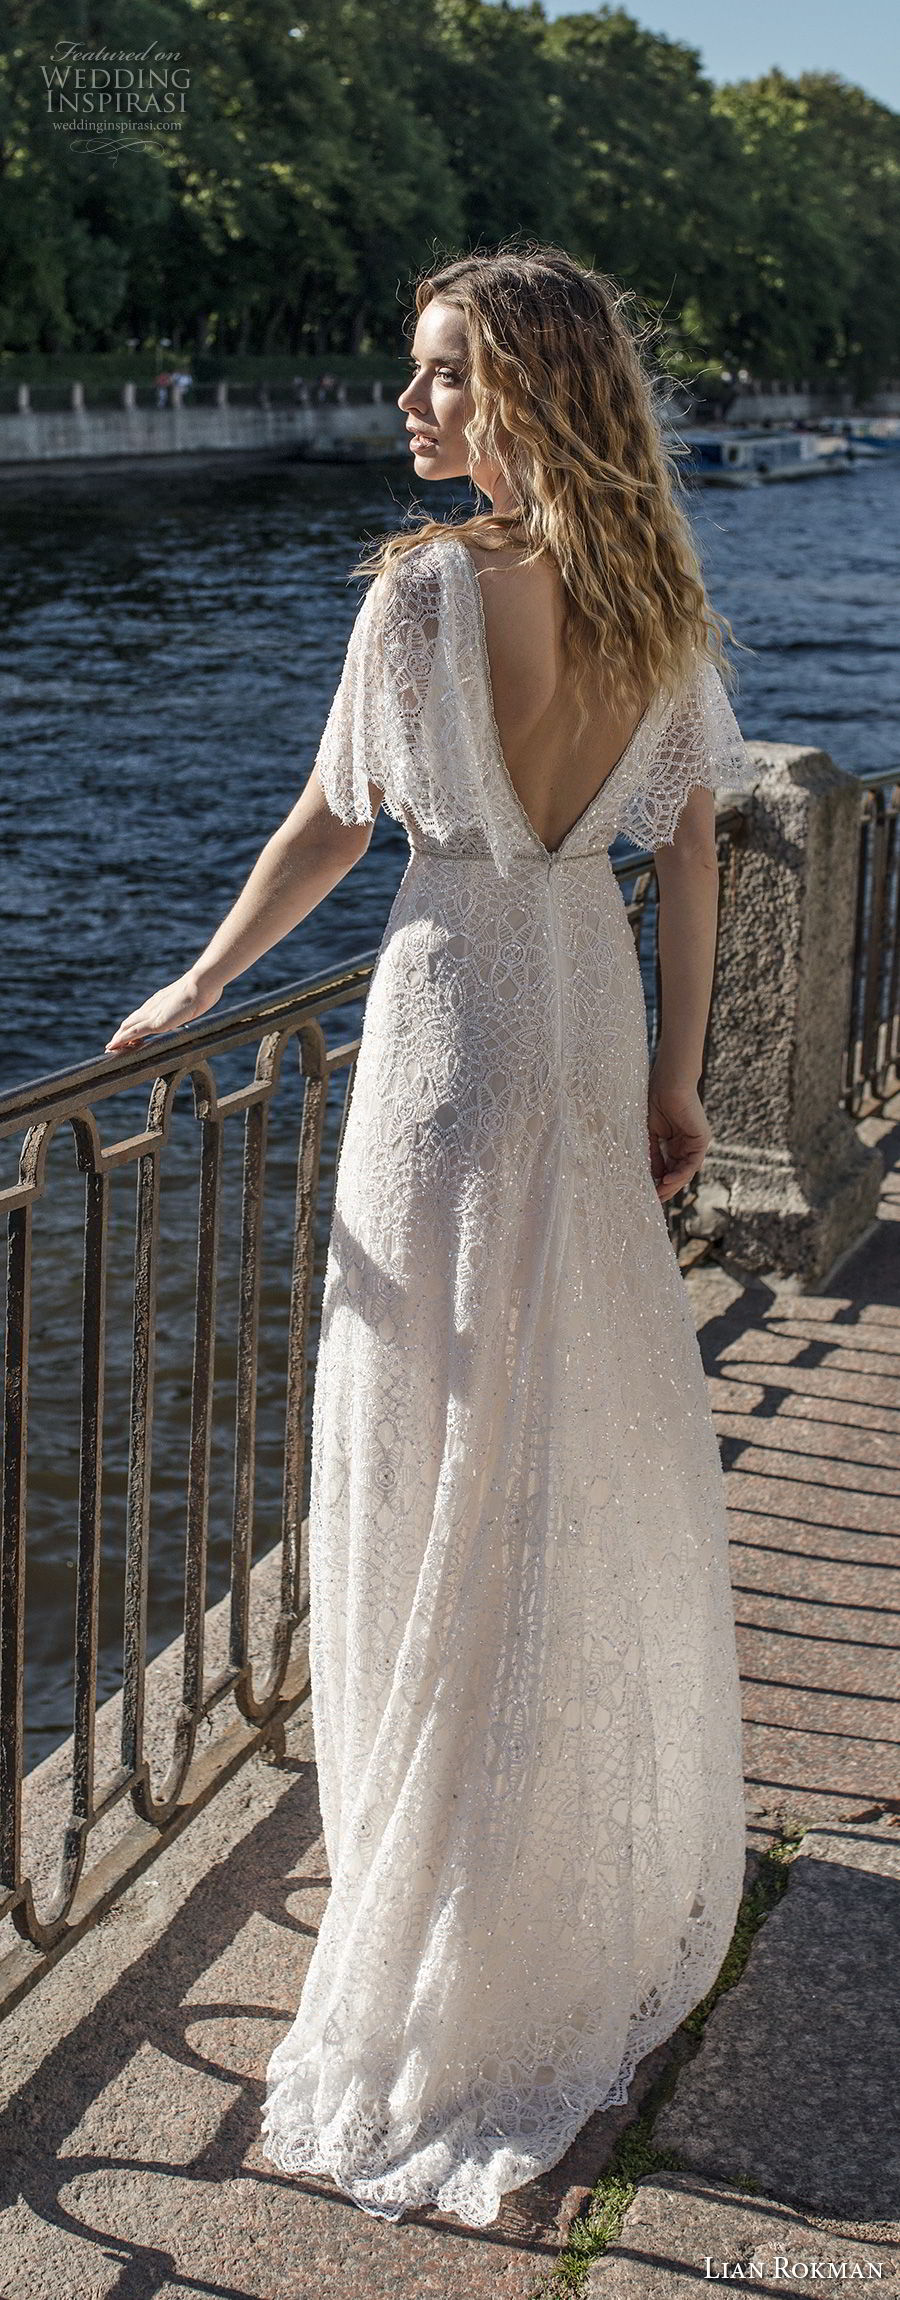 lian rokman 2018 bridal half butterfly sleeves deep v neck full embellishment romantic bohemian sheath wedding dress open v back sweep train (8) bv